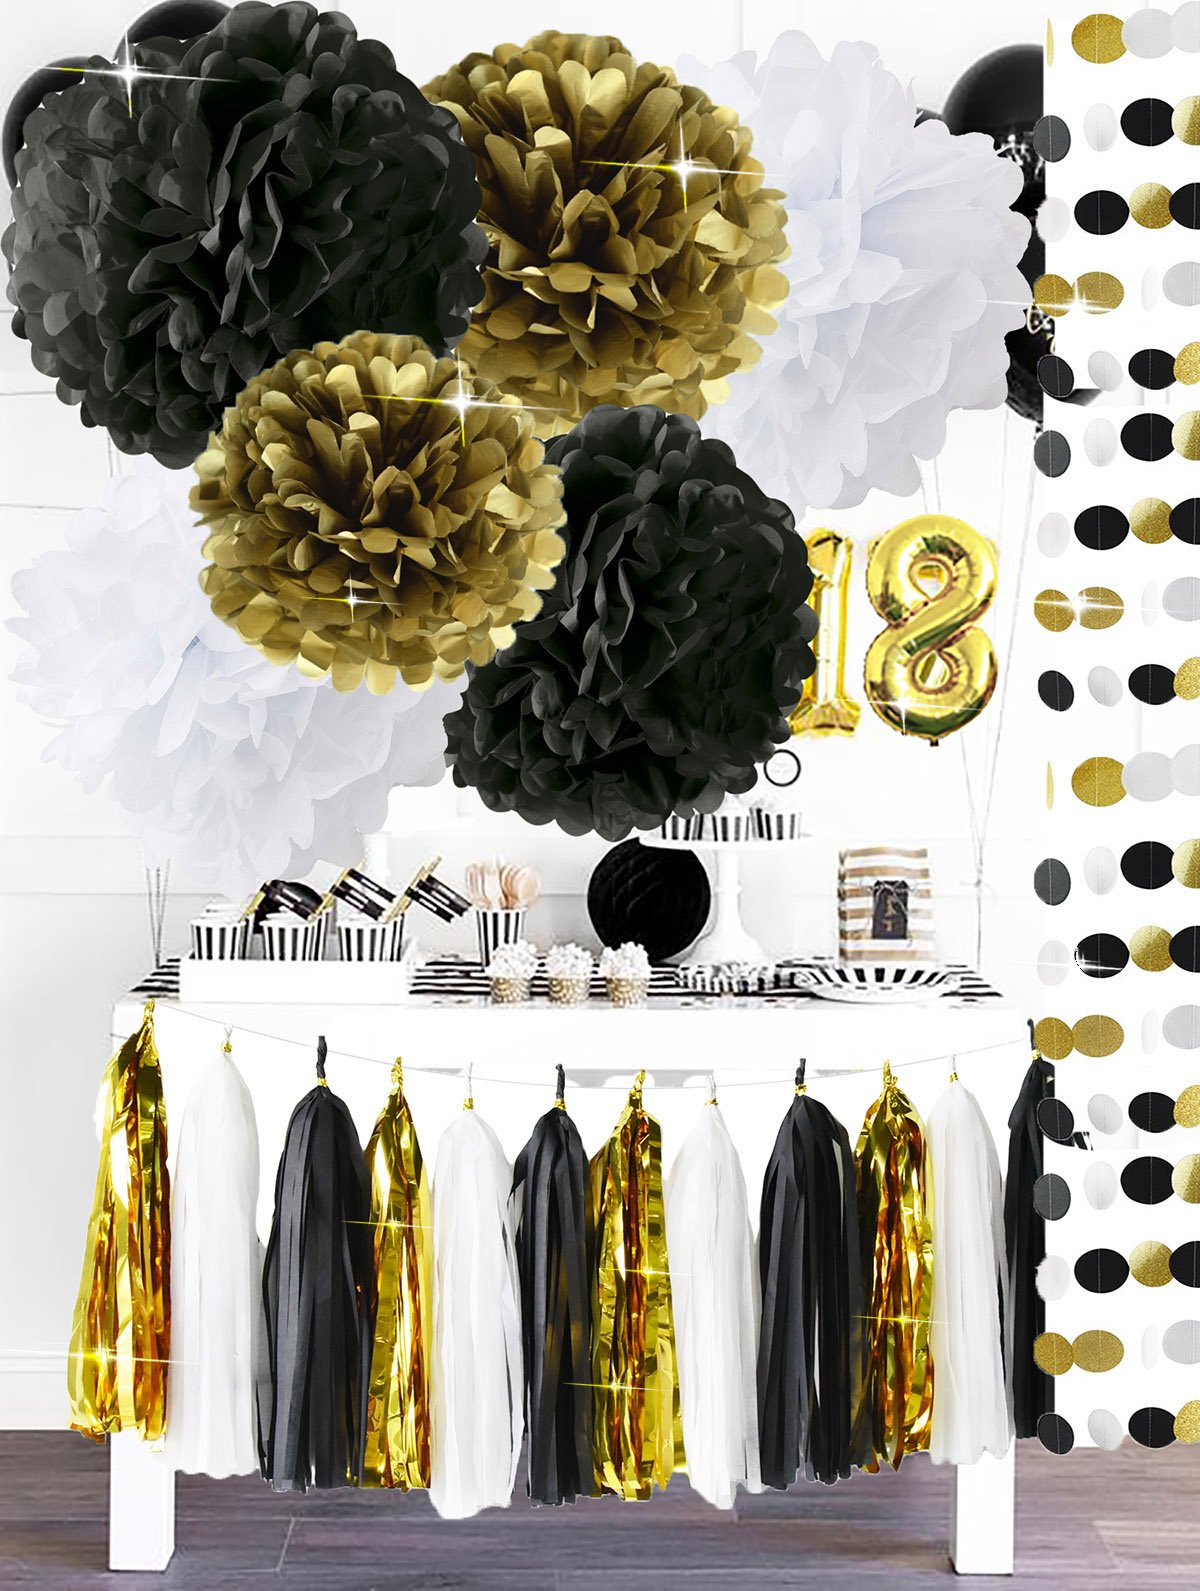 Happy New Year Party Decorations Black White Gold Tissue Paper Pom Pom Paper Tassel Garland for Great Gatsby Decorations/ New Year's Eve Party /Birthday Decorations/Bridal Shower Decorations